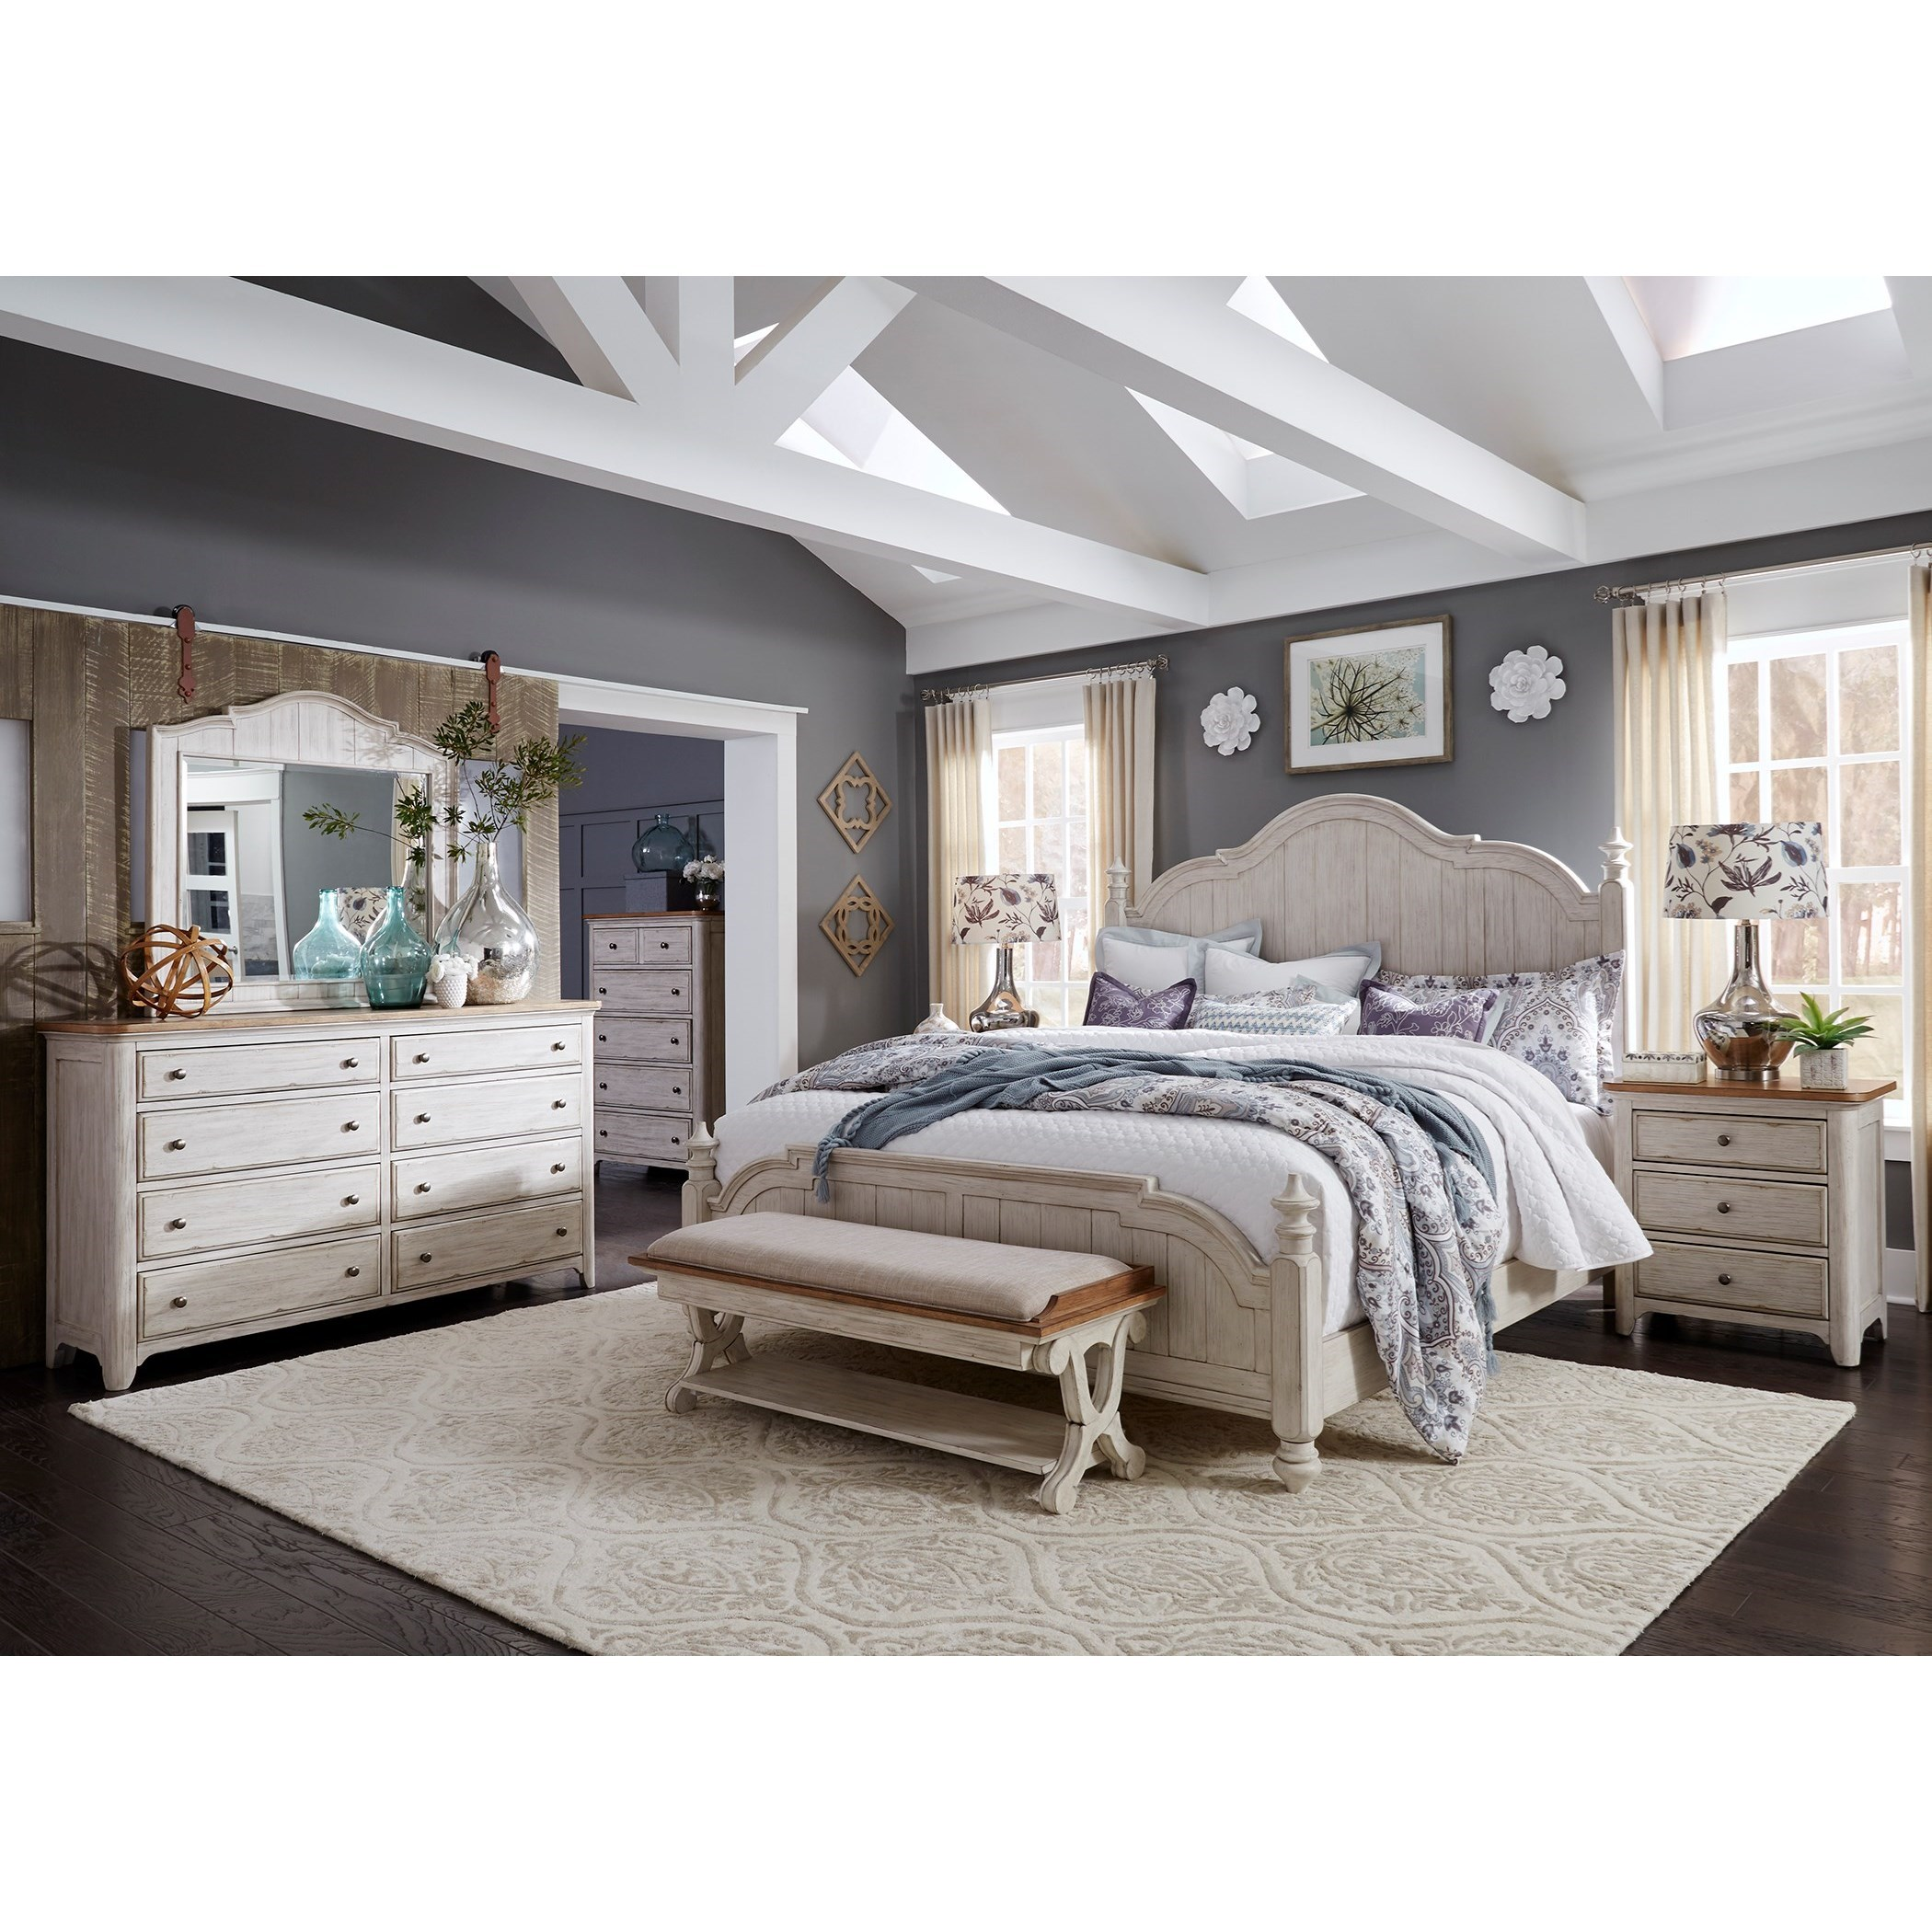 Liberty furniture farmhouse reimagined queen bedroom group for Bedroom furniture groups